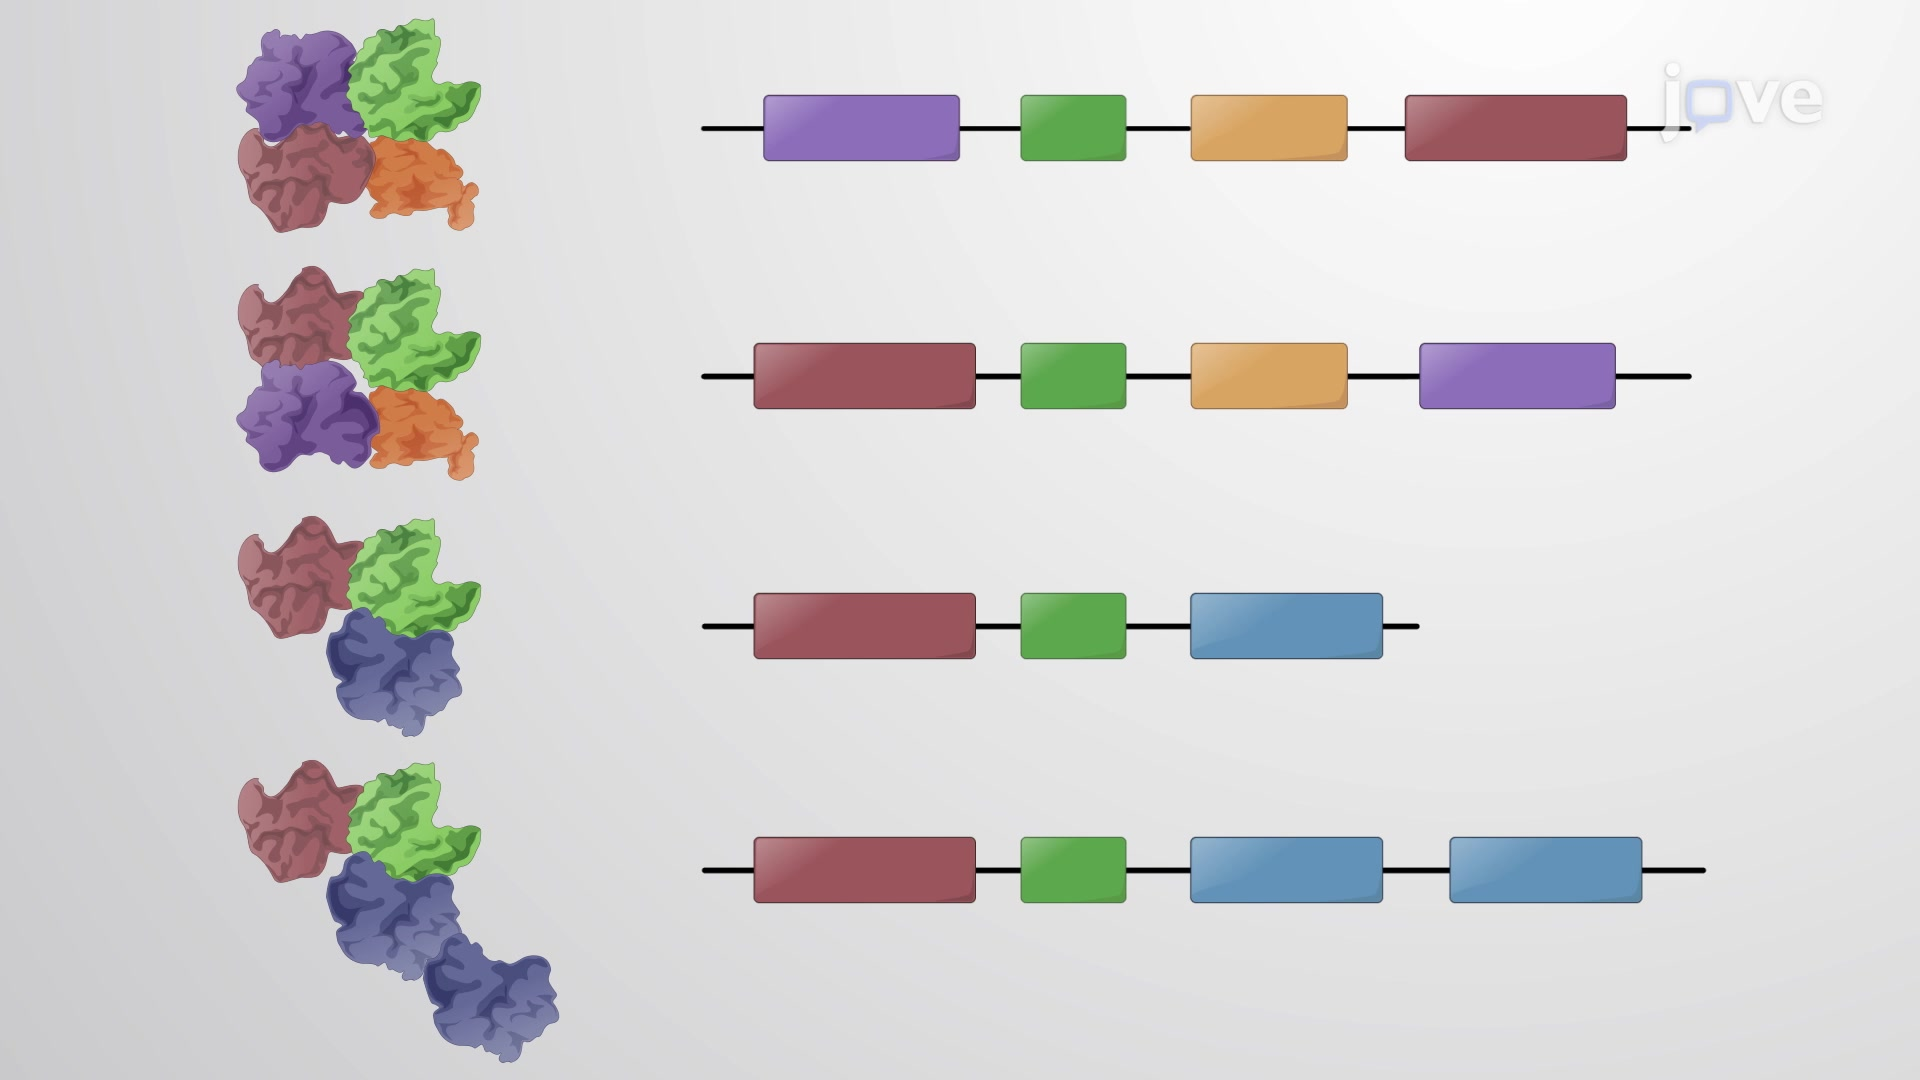 Conservation of Protein Domains over Different Proteins